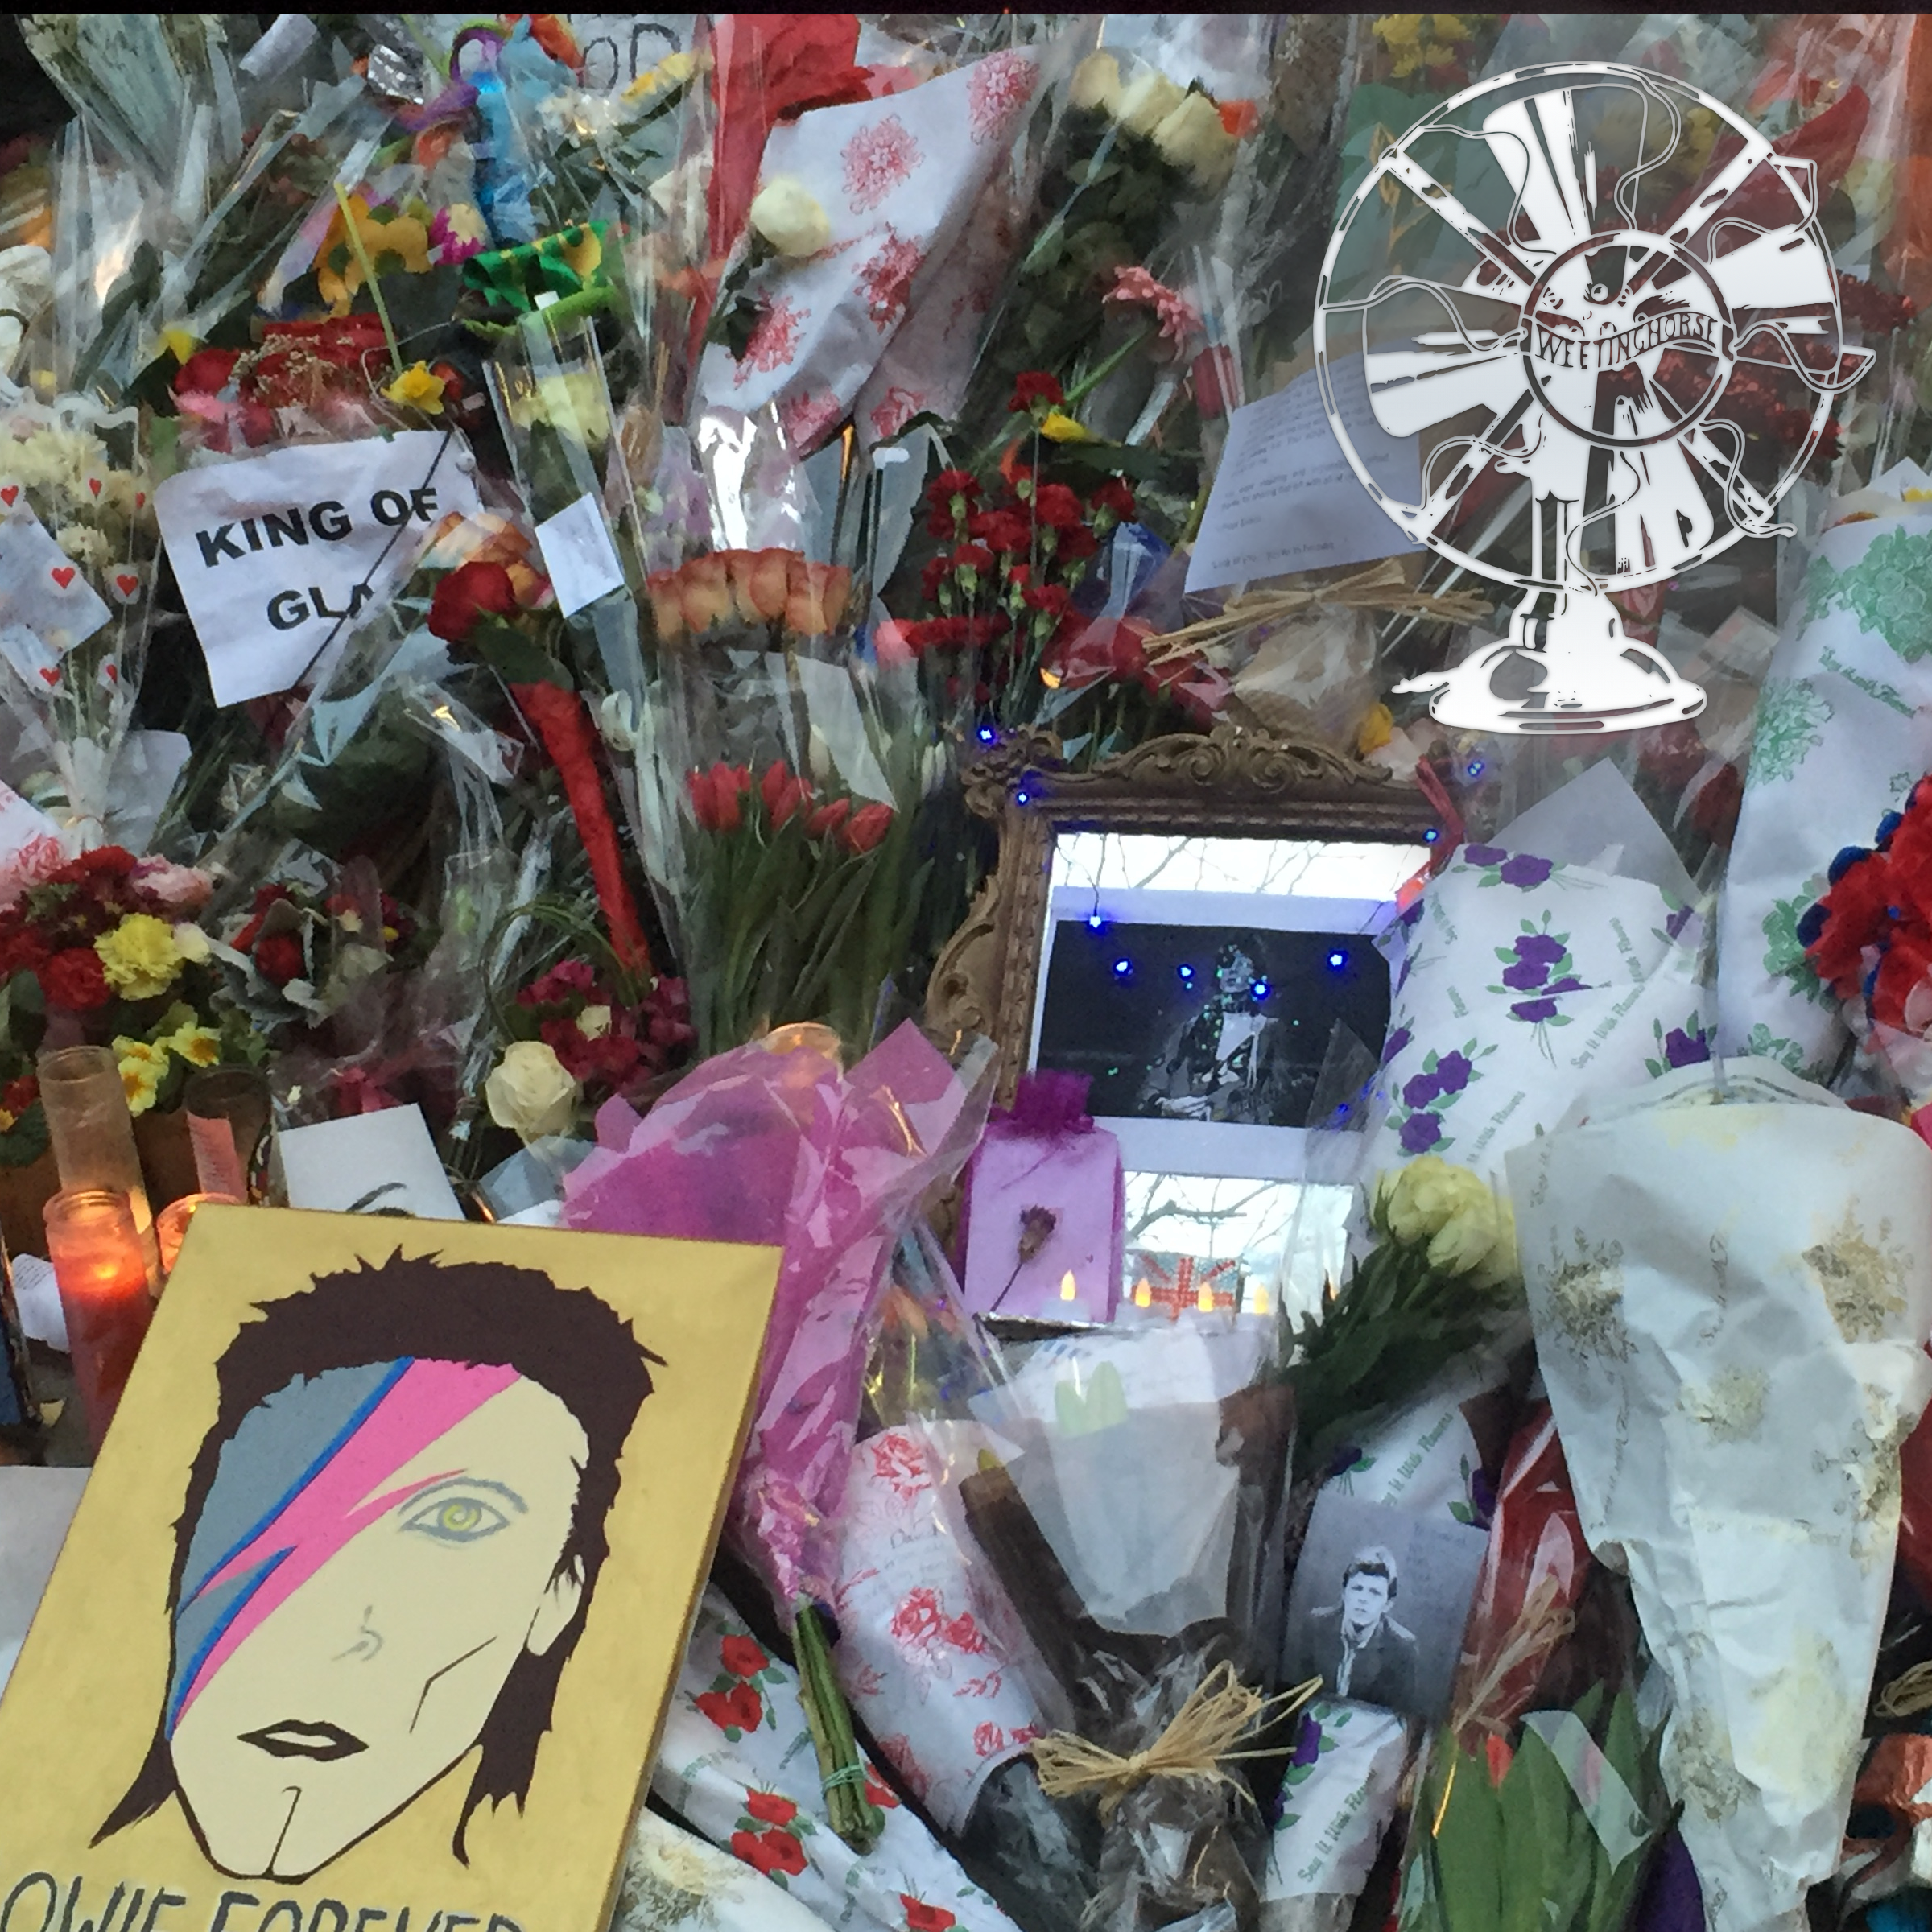 Episode 14's cover: flowers and gifts piled in memory of David Bowie.